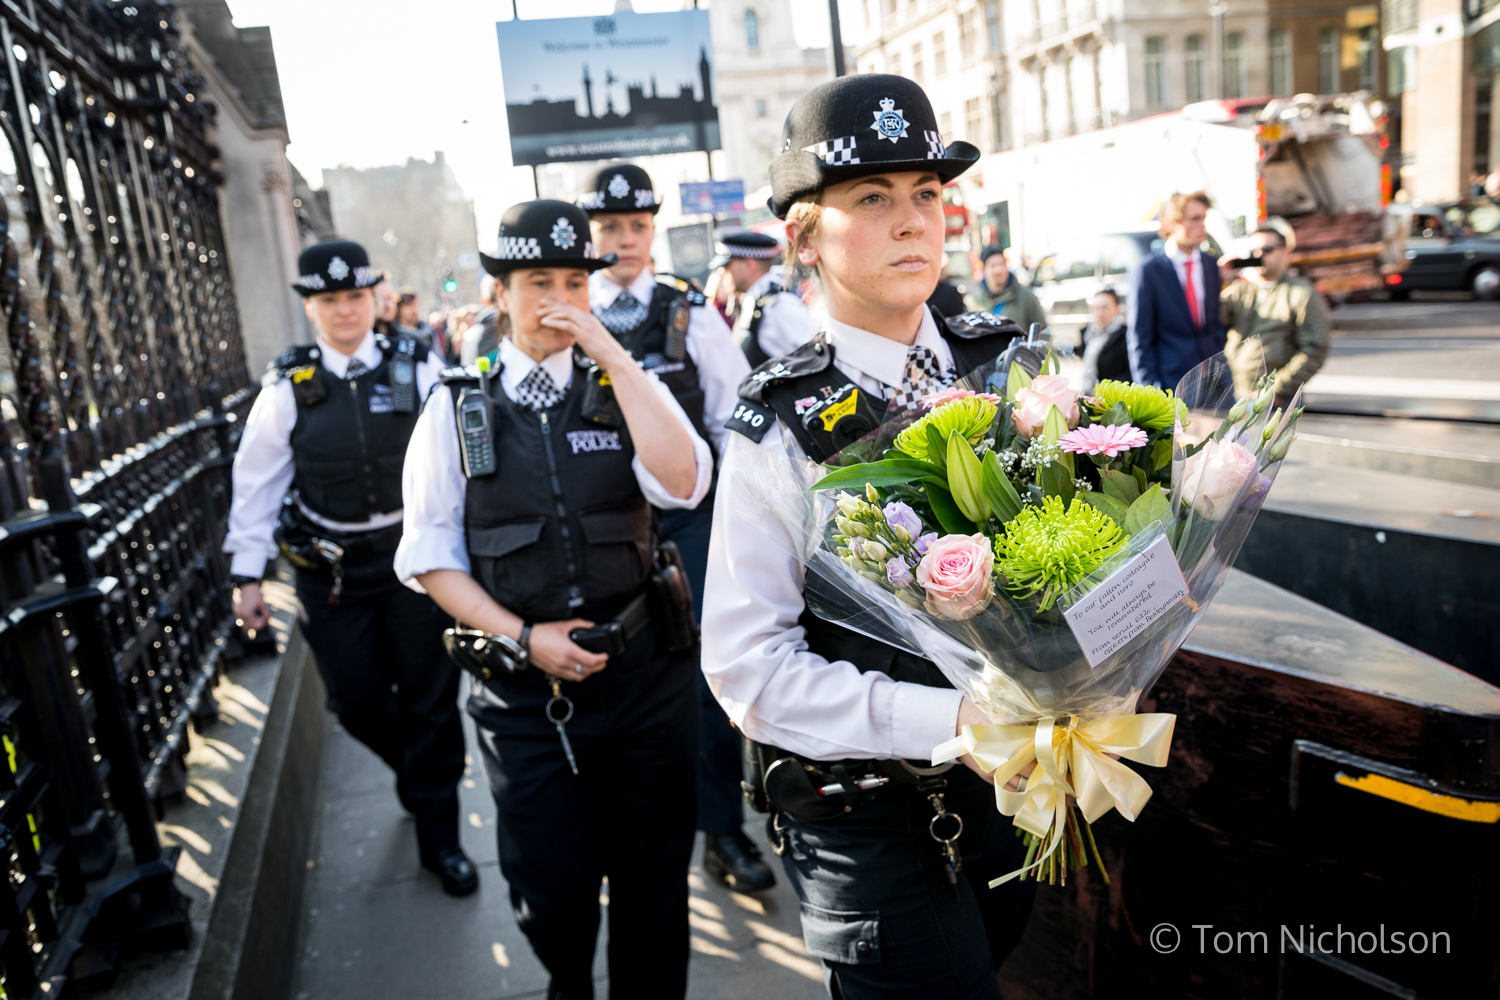 ©2017 Tom Nicholson. 24/03/2017. London, UK. Police officers leave flowers outside the Houses of Parliament in memory of those lost in the terror attack in London on 22 March.